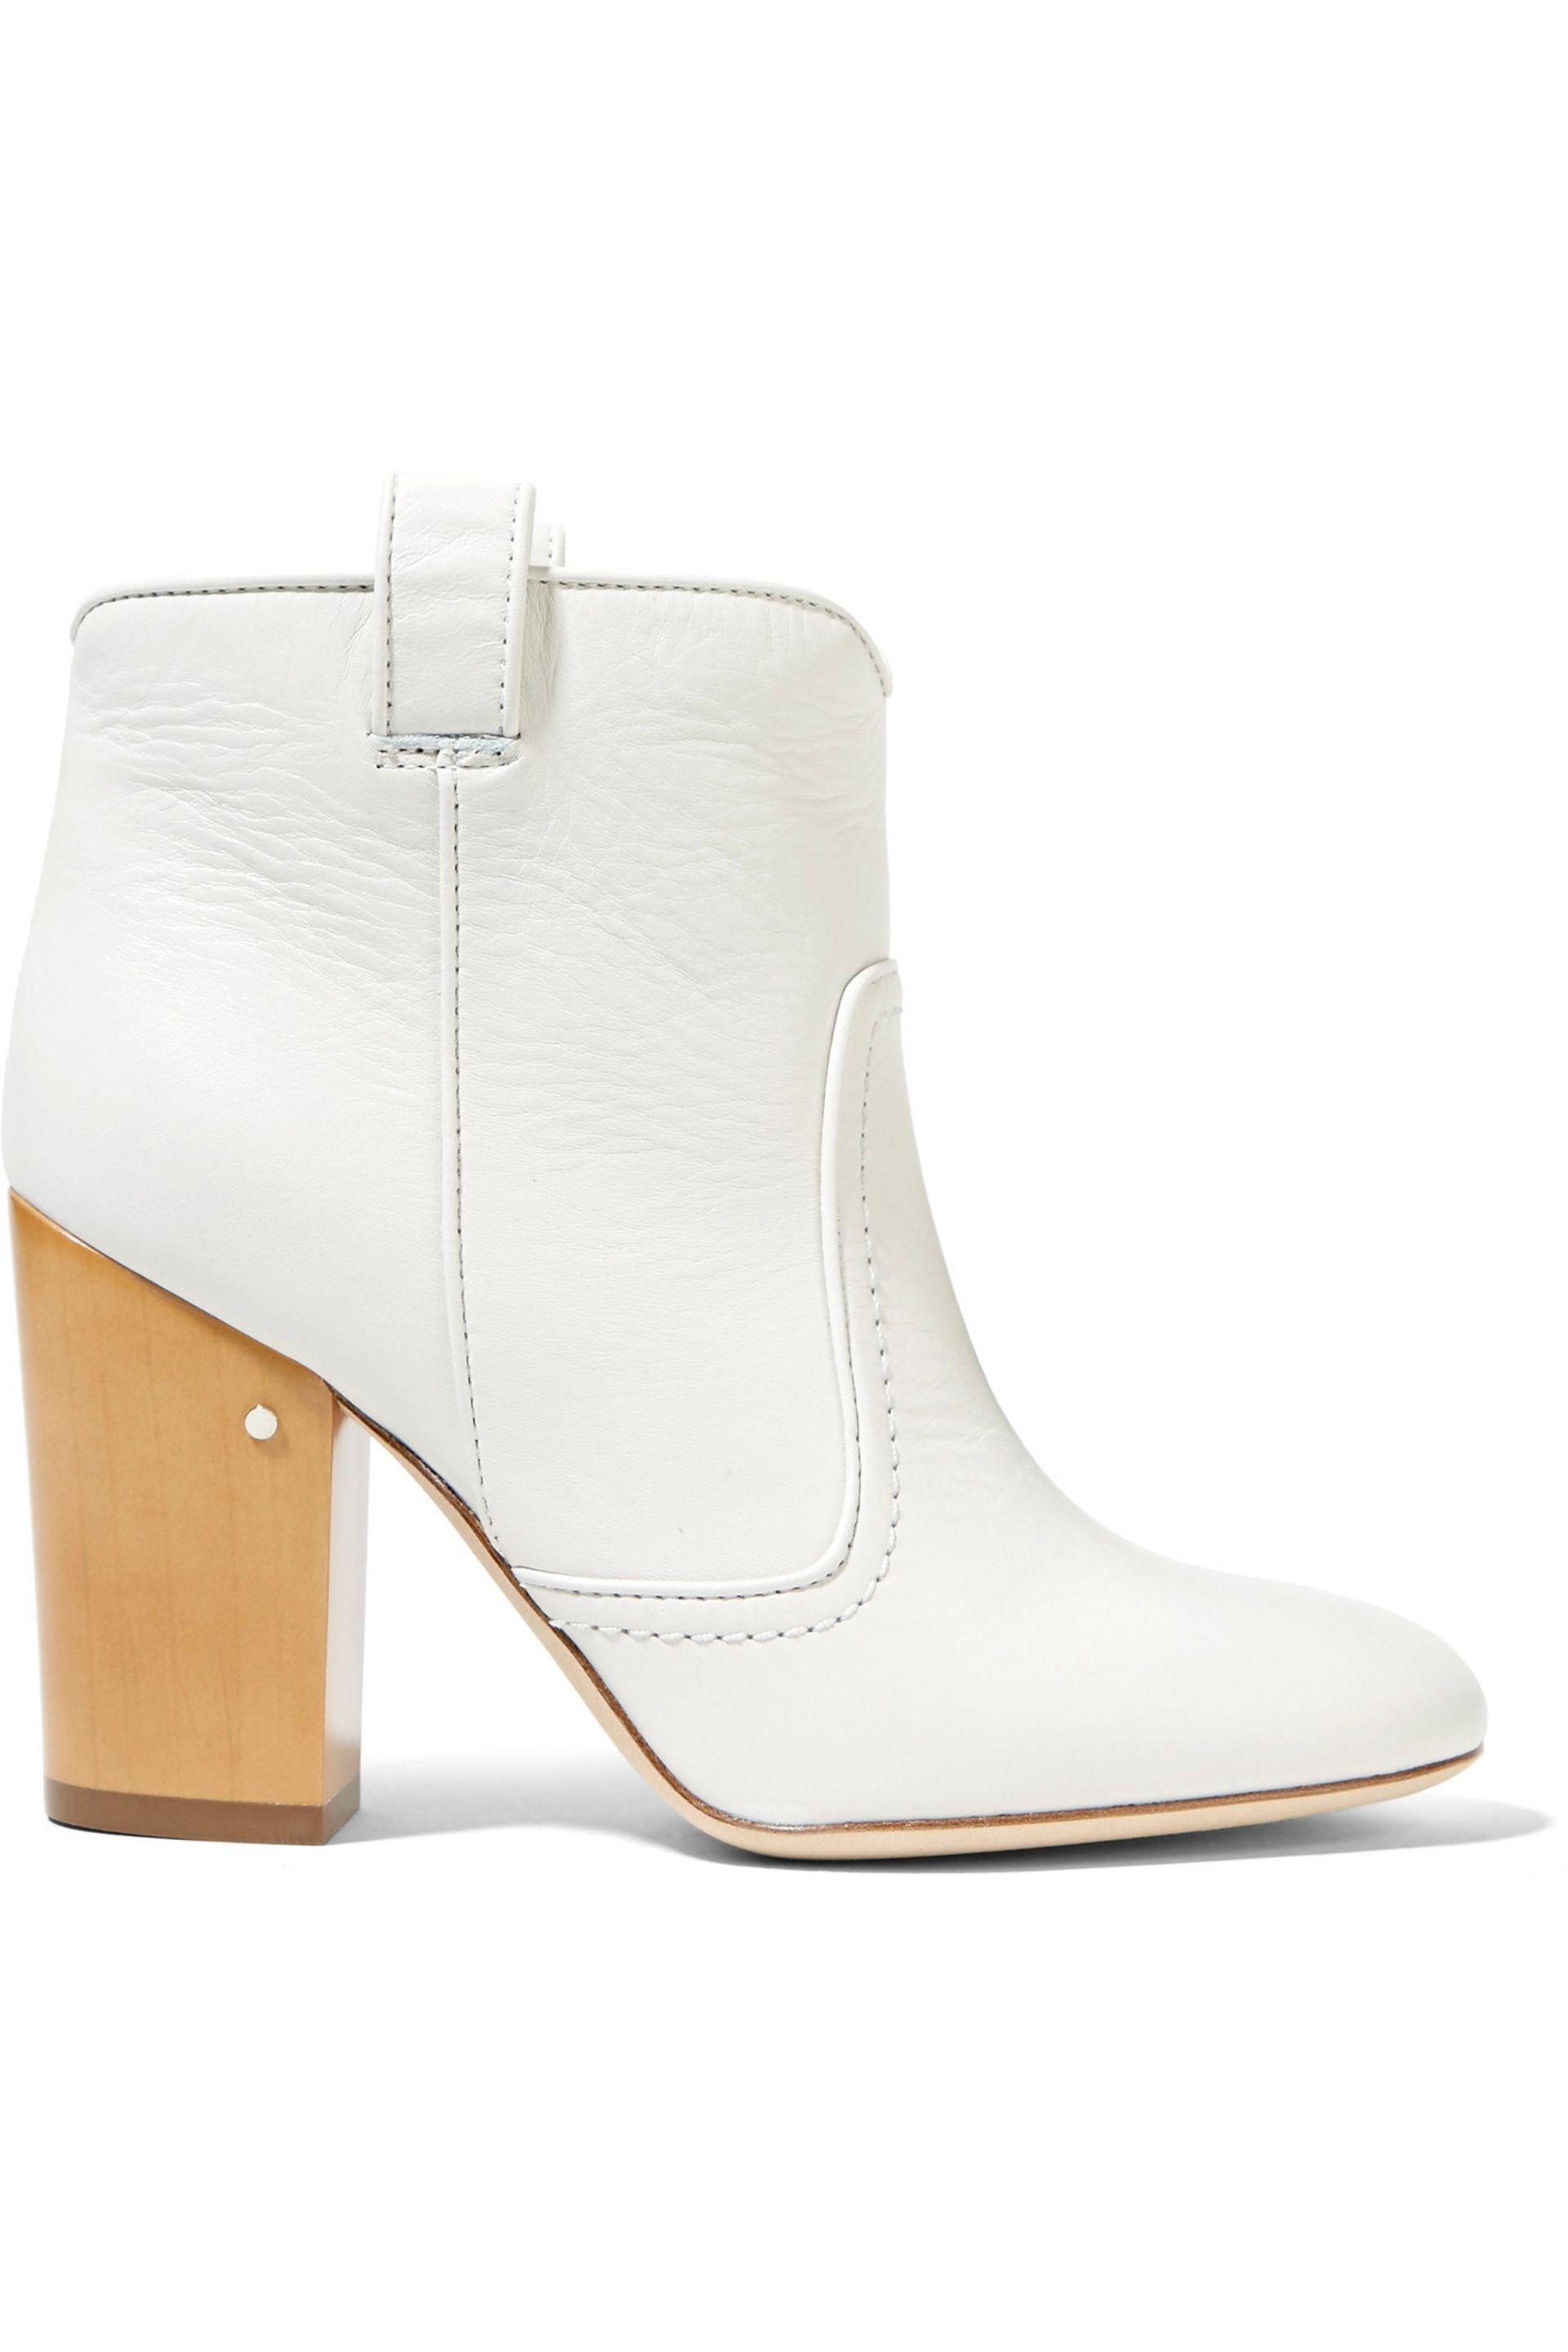 cut-out detail boots - White Laurence Dacade New Arrival Sale Online f08wjT9